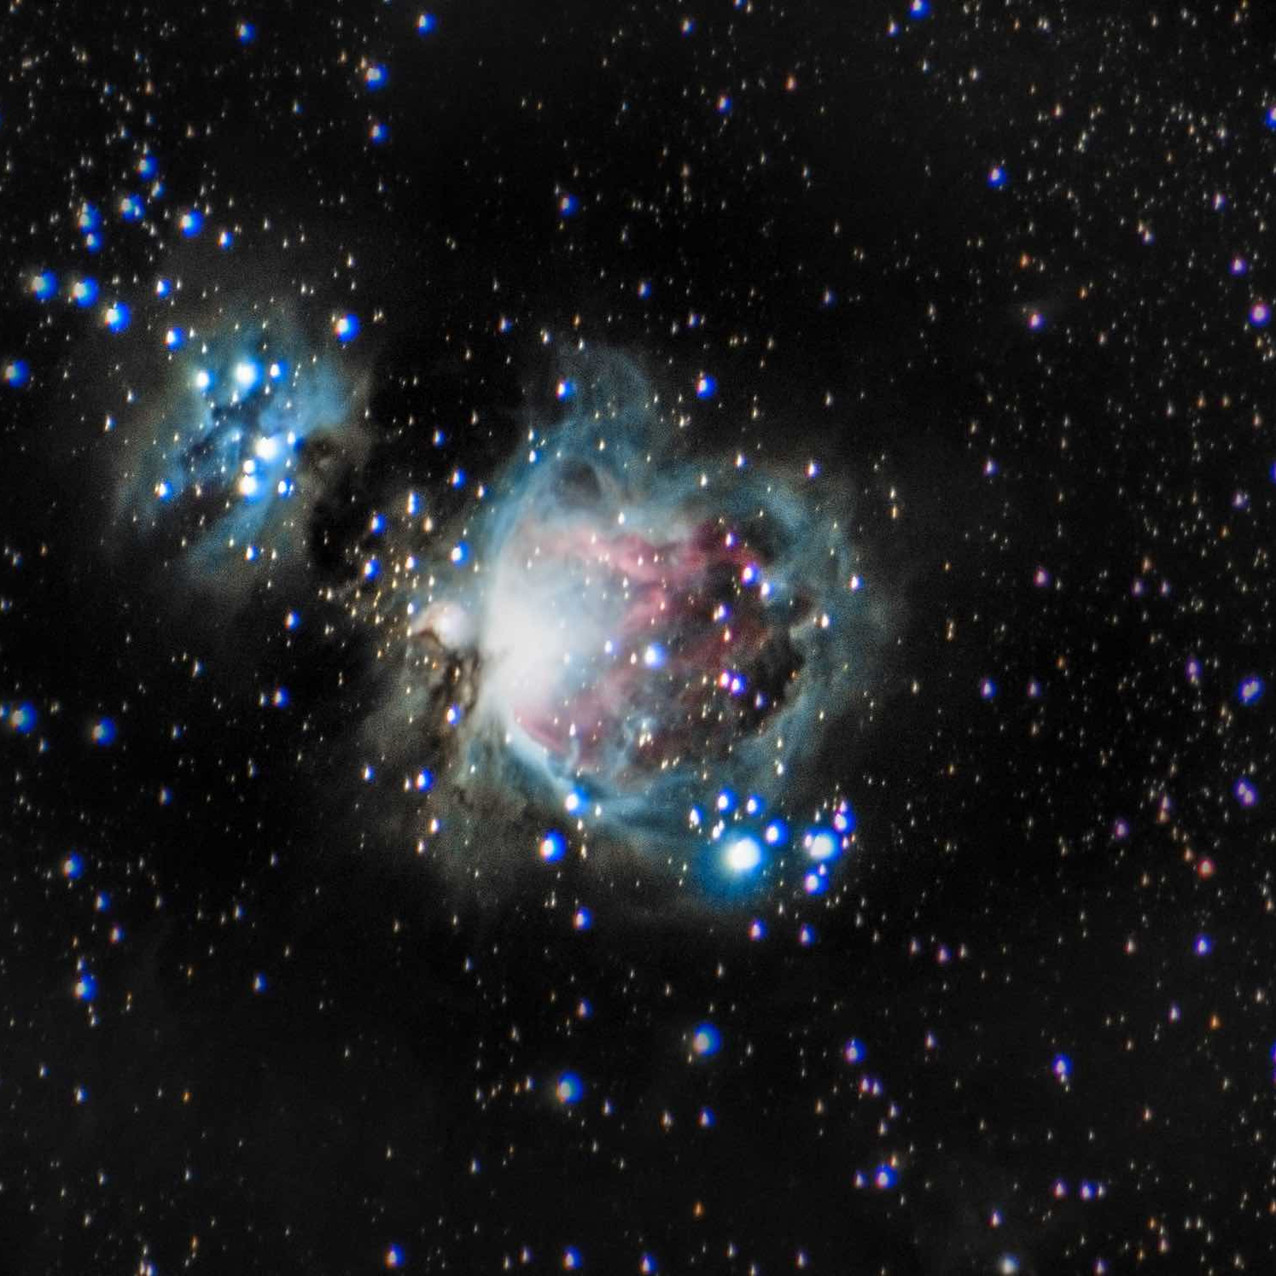 M42 wide field DSLR astrophotography without a telescope using a Canon t3i and an iOptron SkyTracker